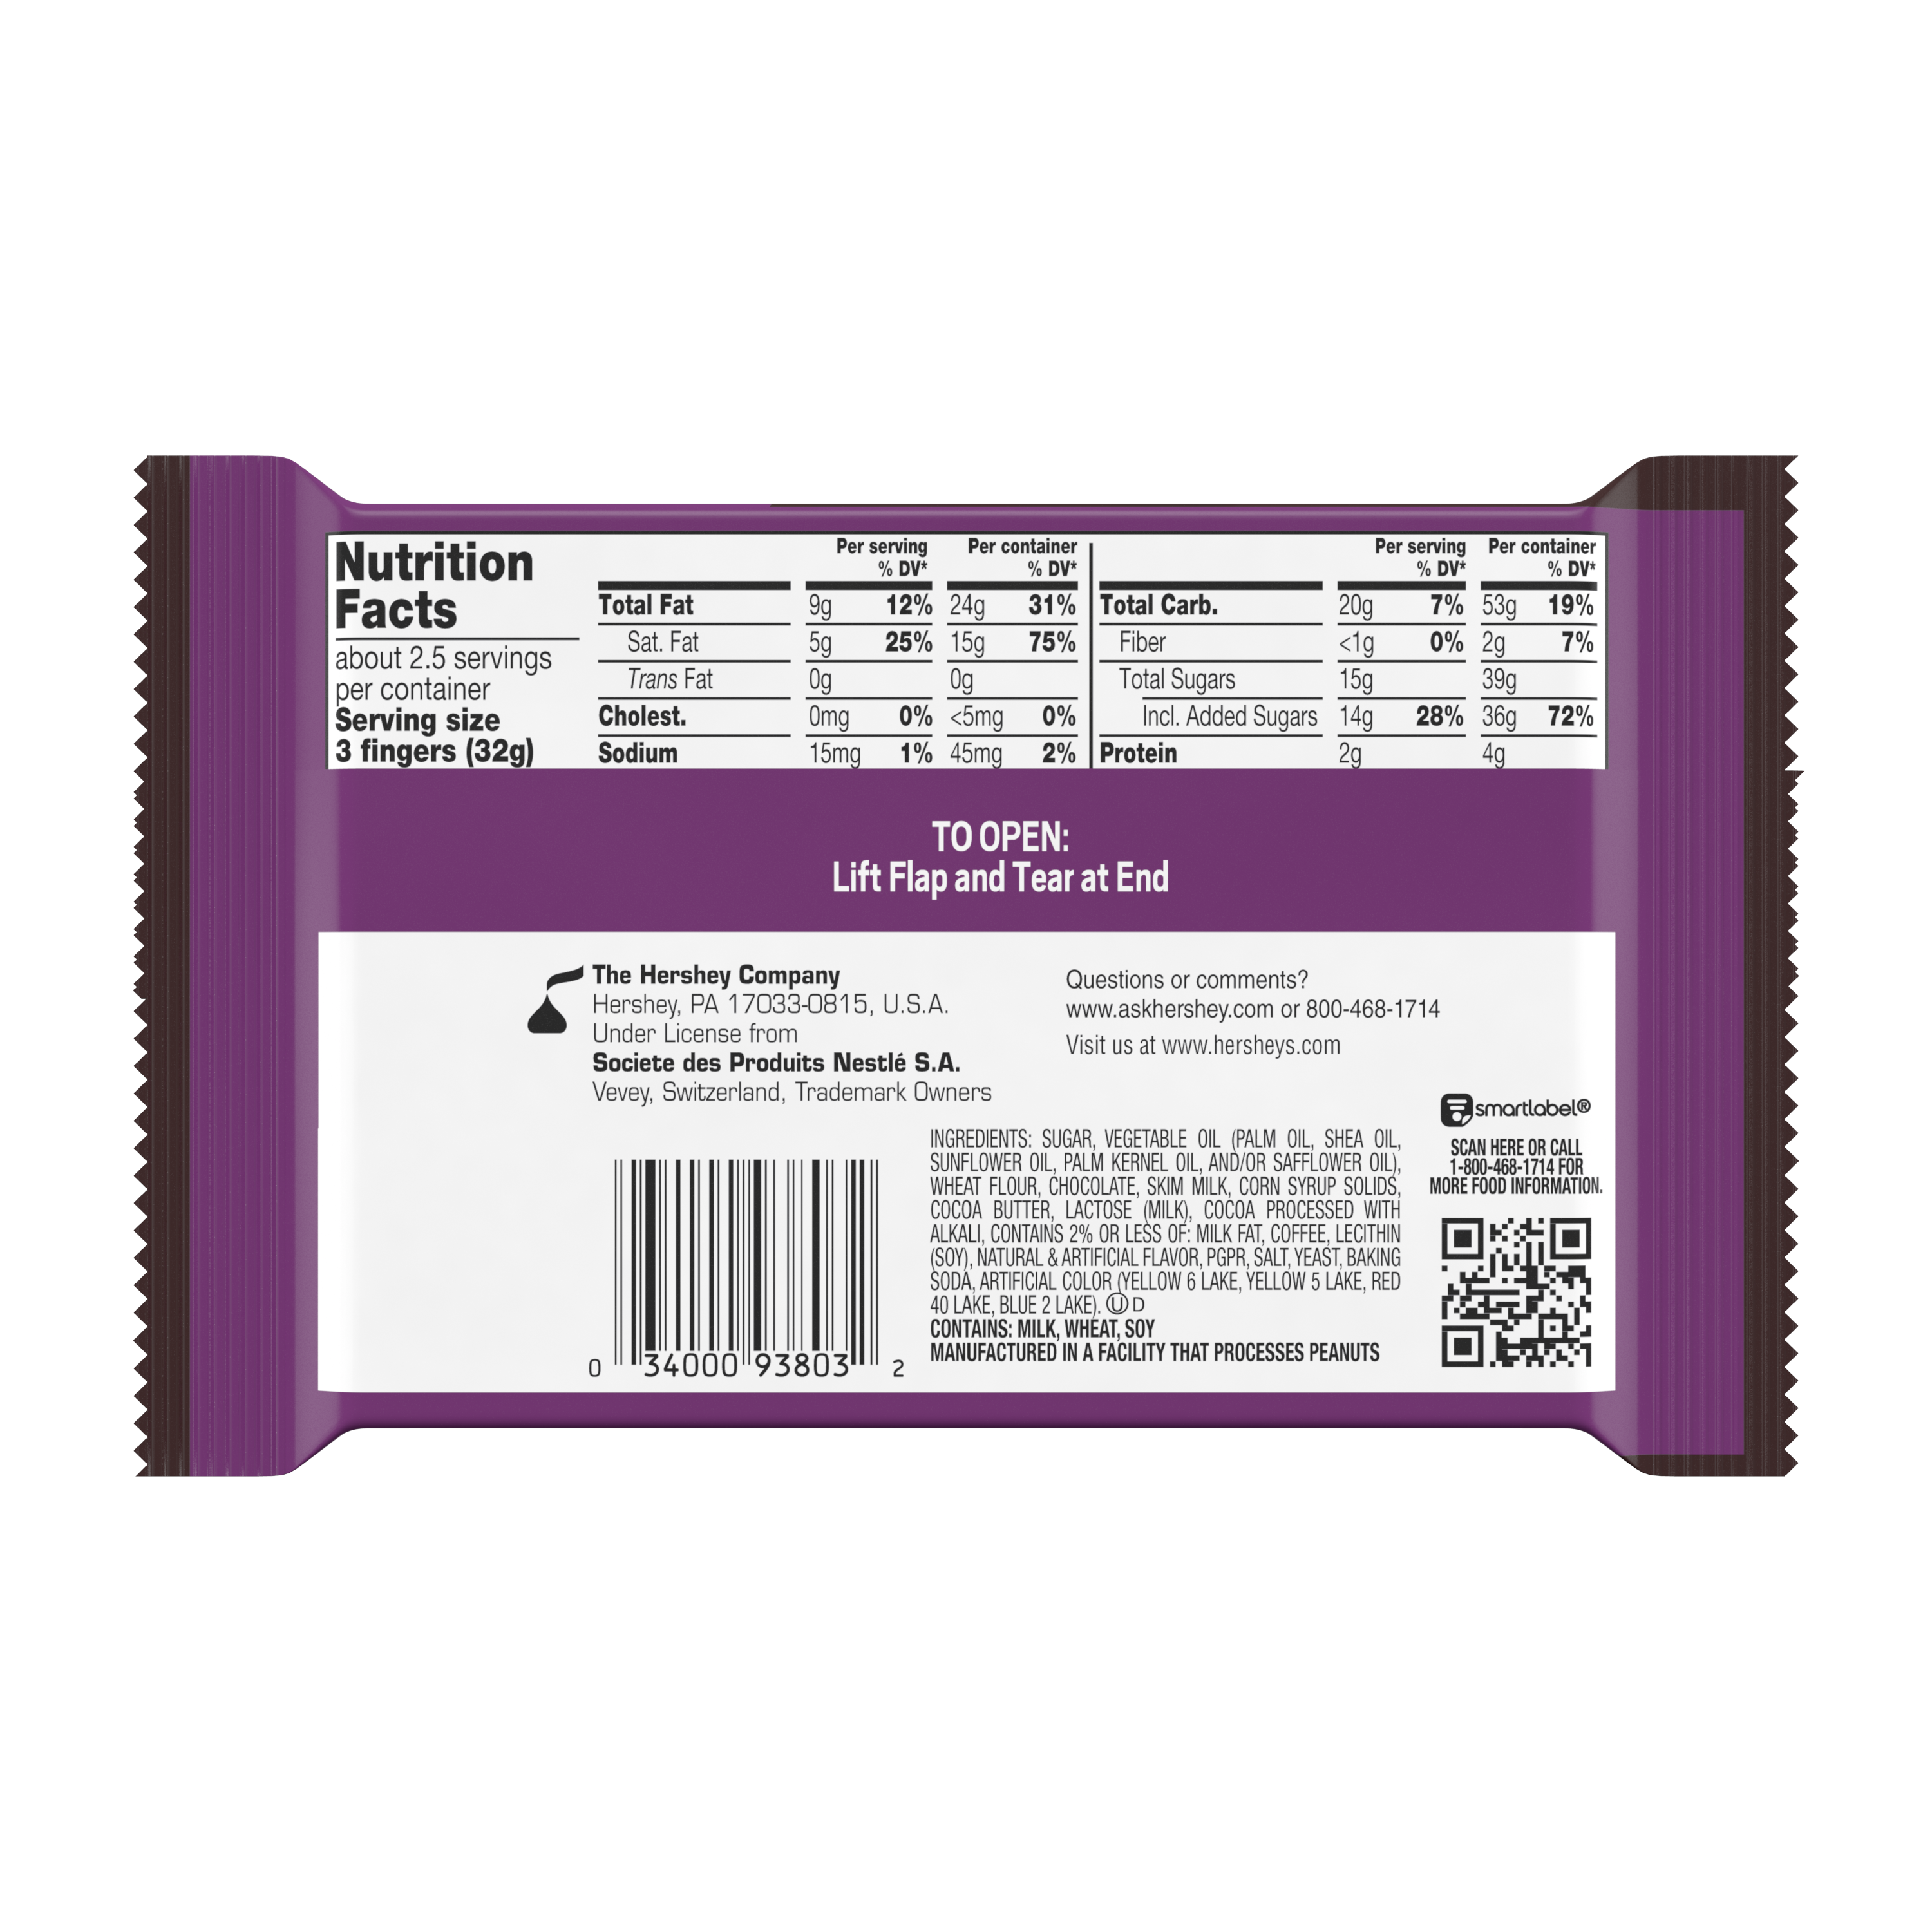 KIT KAT® DUOS Mocha and Chocolate King Size Candy Bar, 3 oz - Back of Package